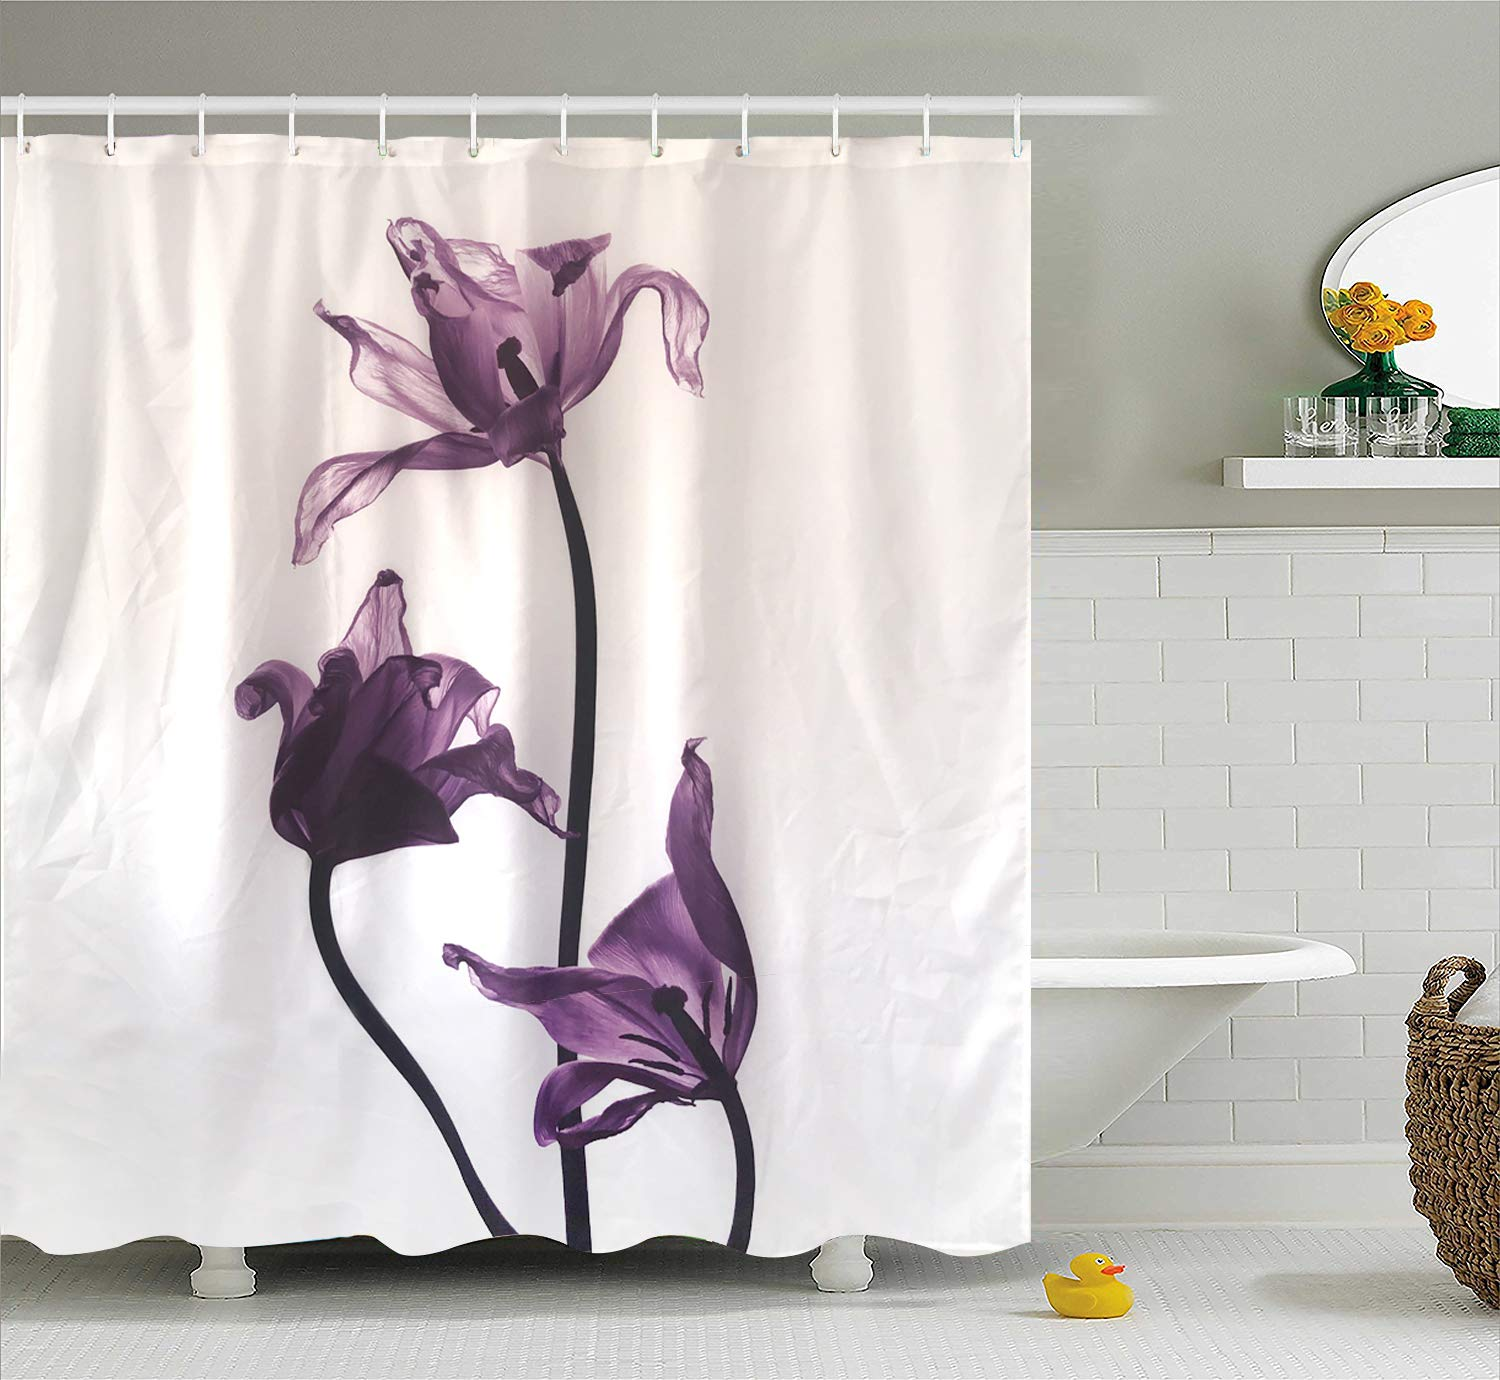 Purple Shower Curtain Sets For Bathroom Withered Transparent Tulips Flowers